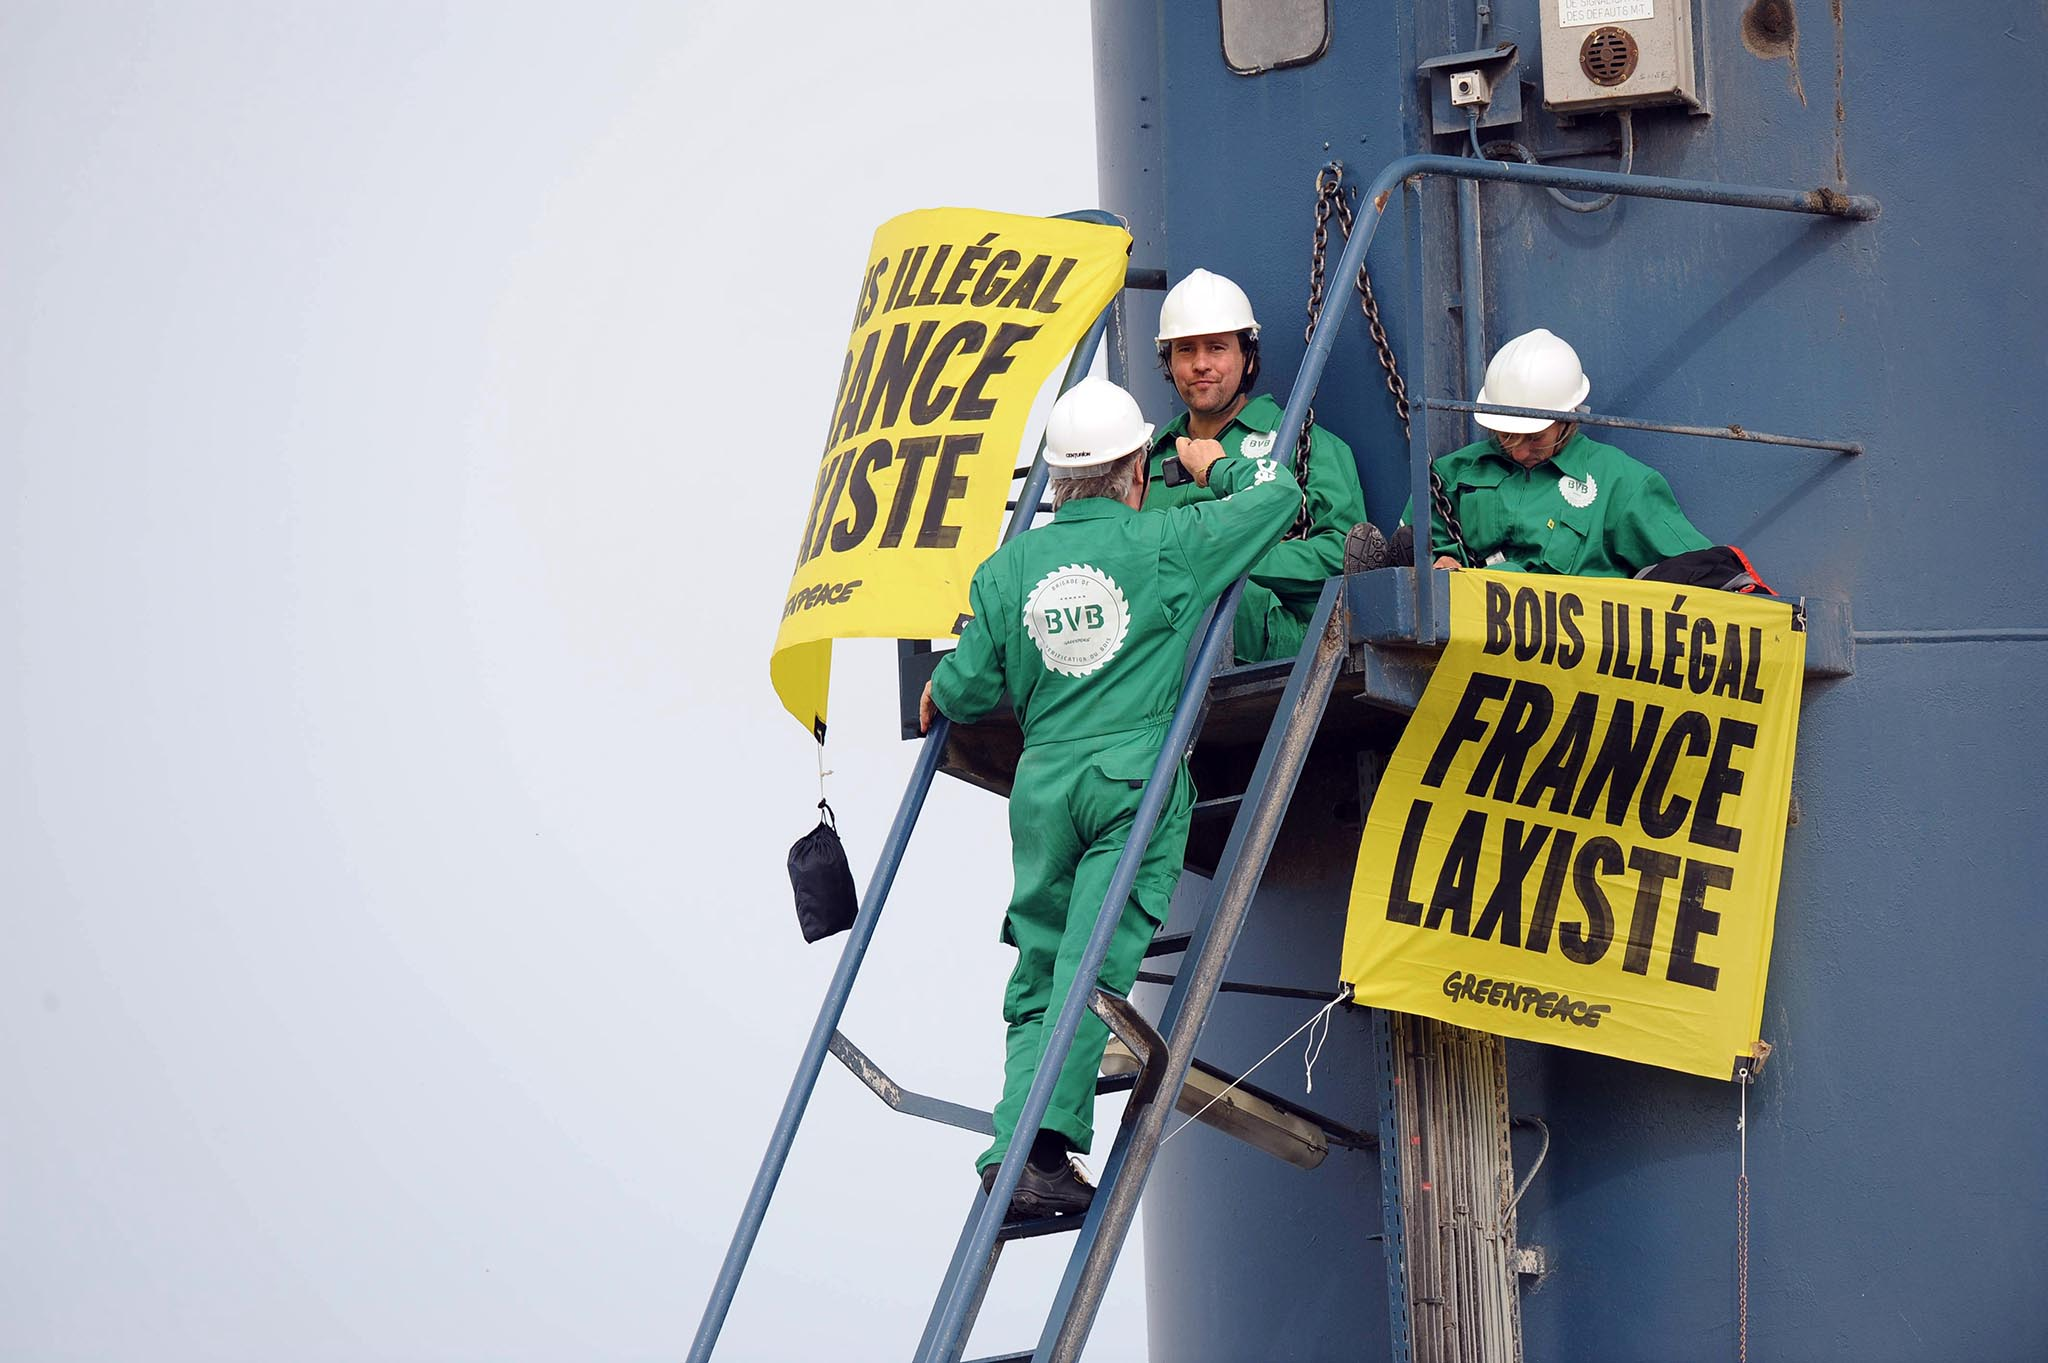 Greenpeace activists climb on cranes